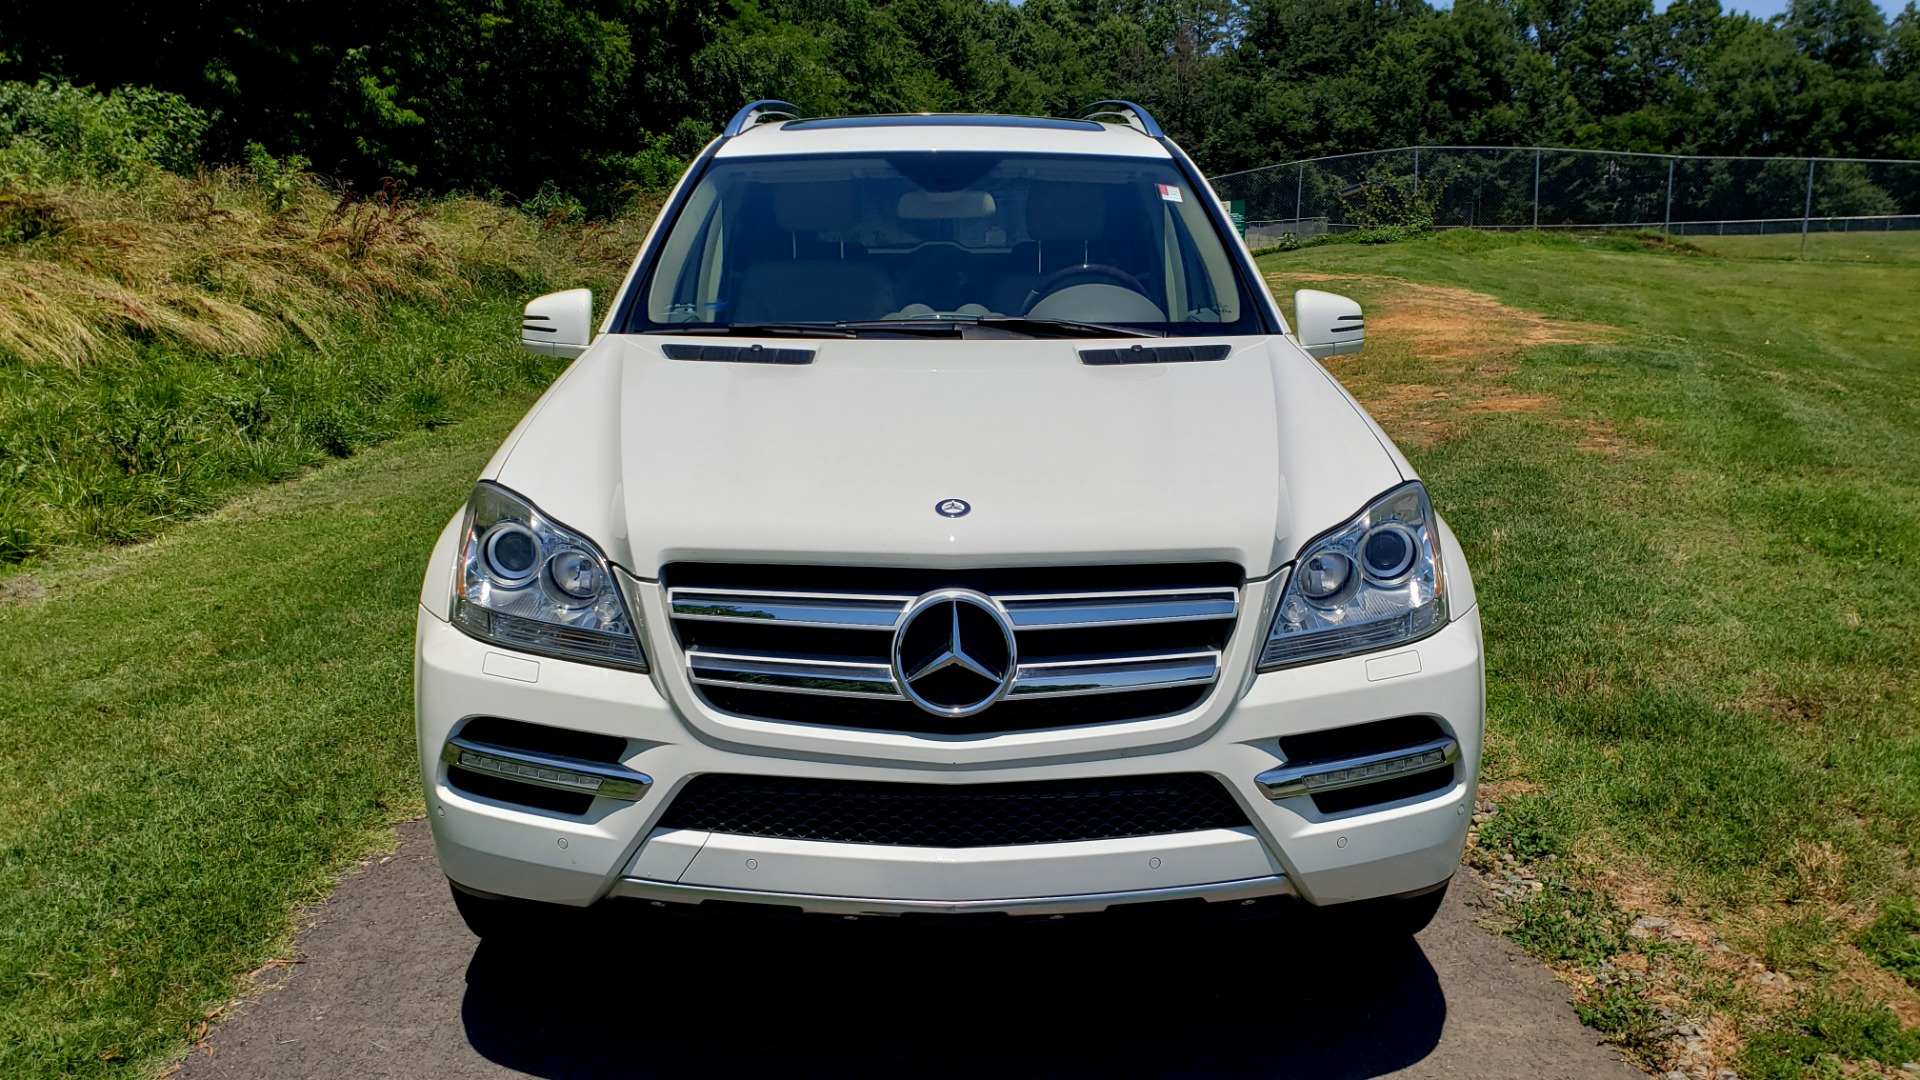 Used 2012 Mercedes-Benz GL-CLASS GL 350 BLUETEC / NAV / DUAL-ROOF / HTD STS / 3-ROW / REARVIEW for sale Sold at Formula Imports in Charlotte NC 28227 10